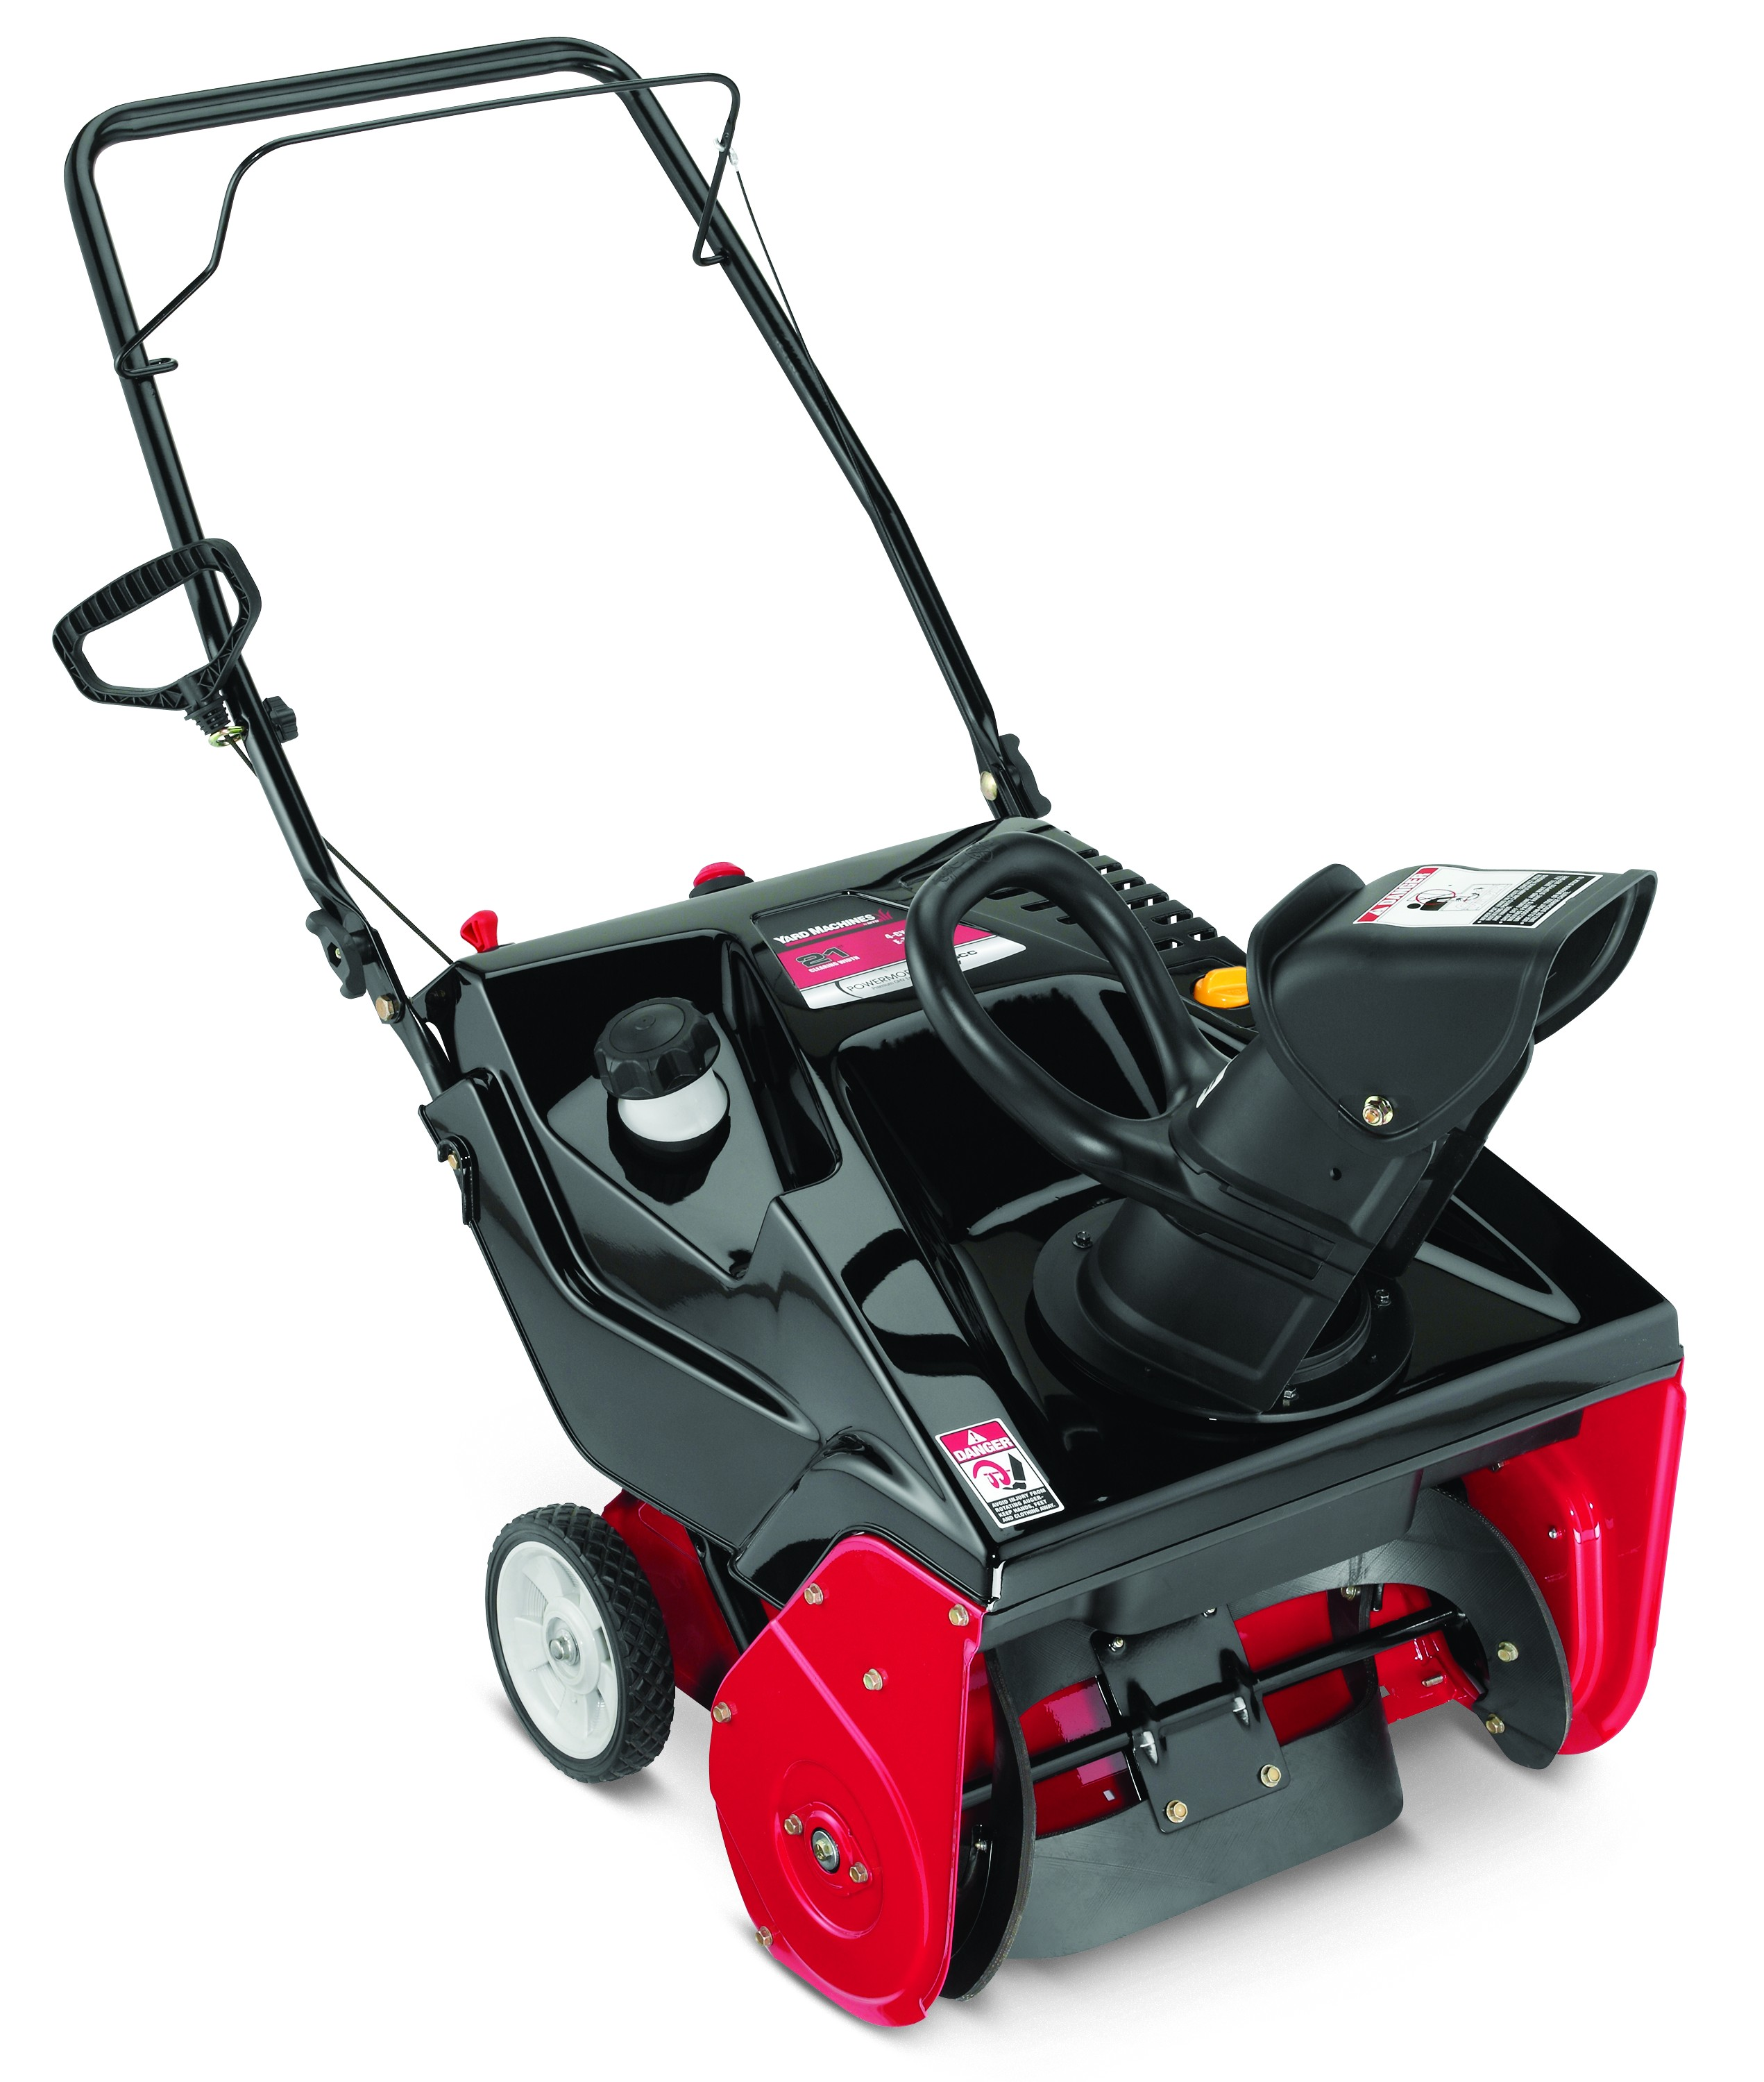 "Yard Machines 21"" 179cc Single-Stage Snow Blower with Electric Start by MTD Products"